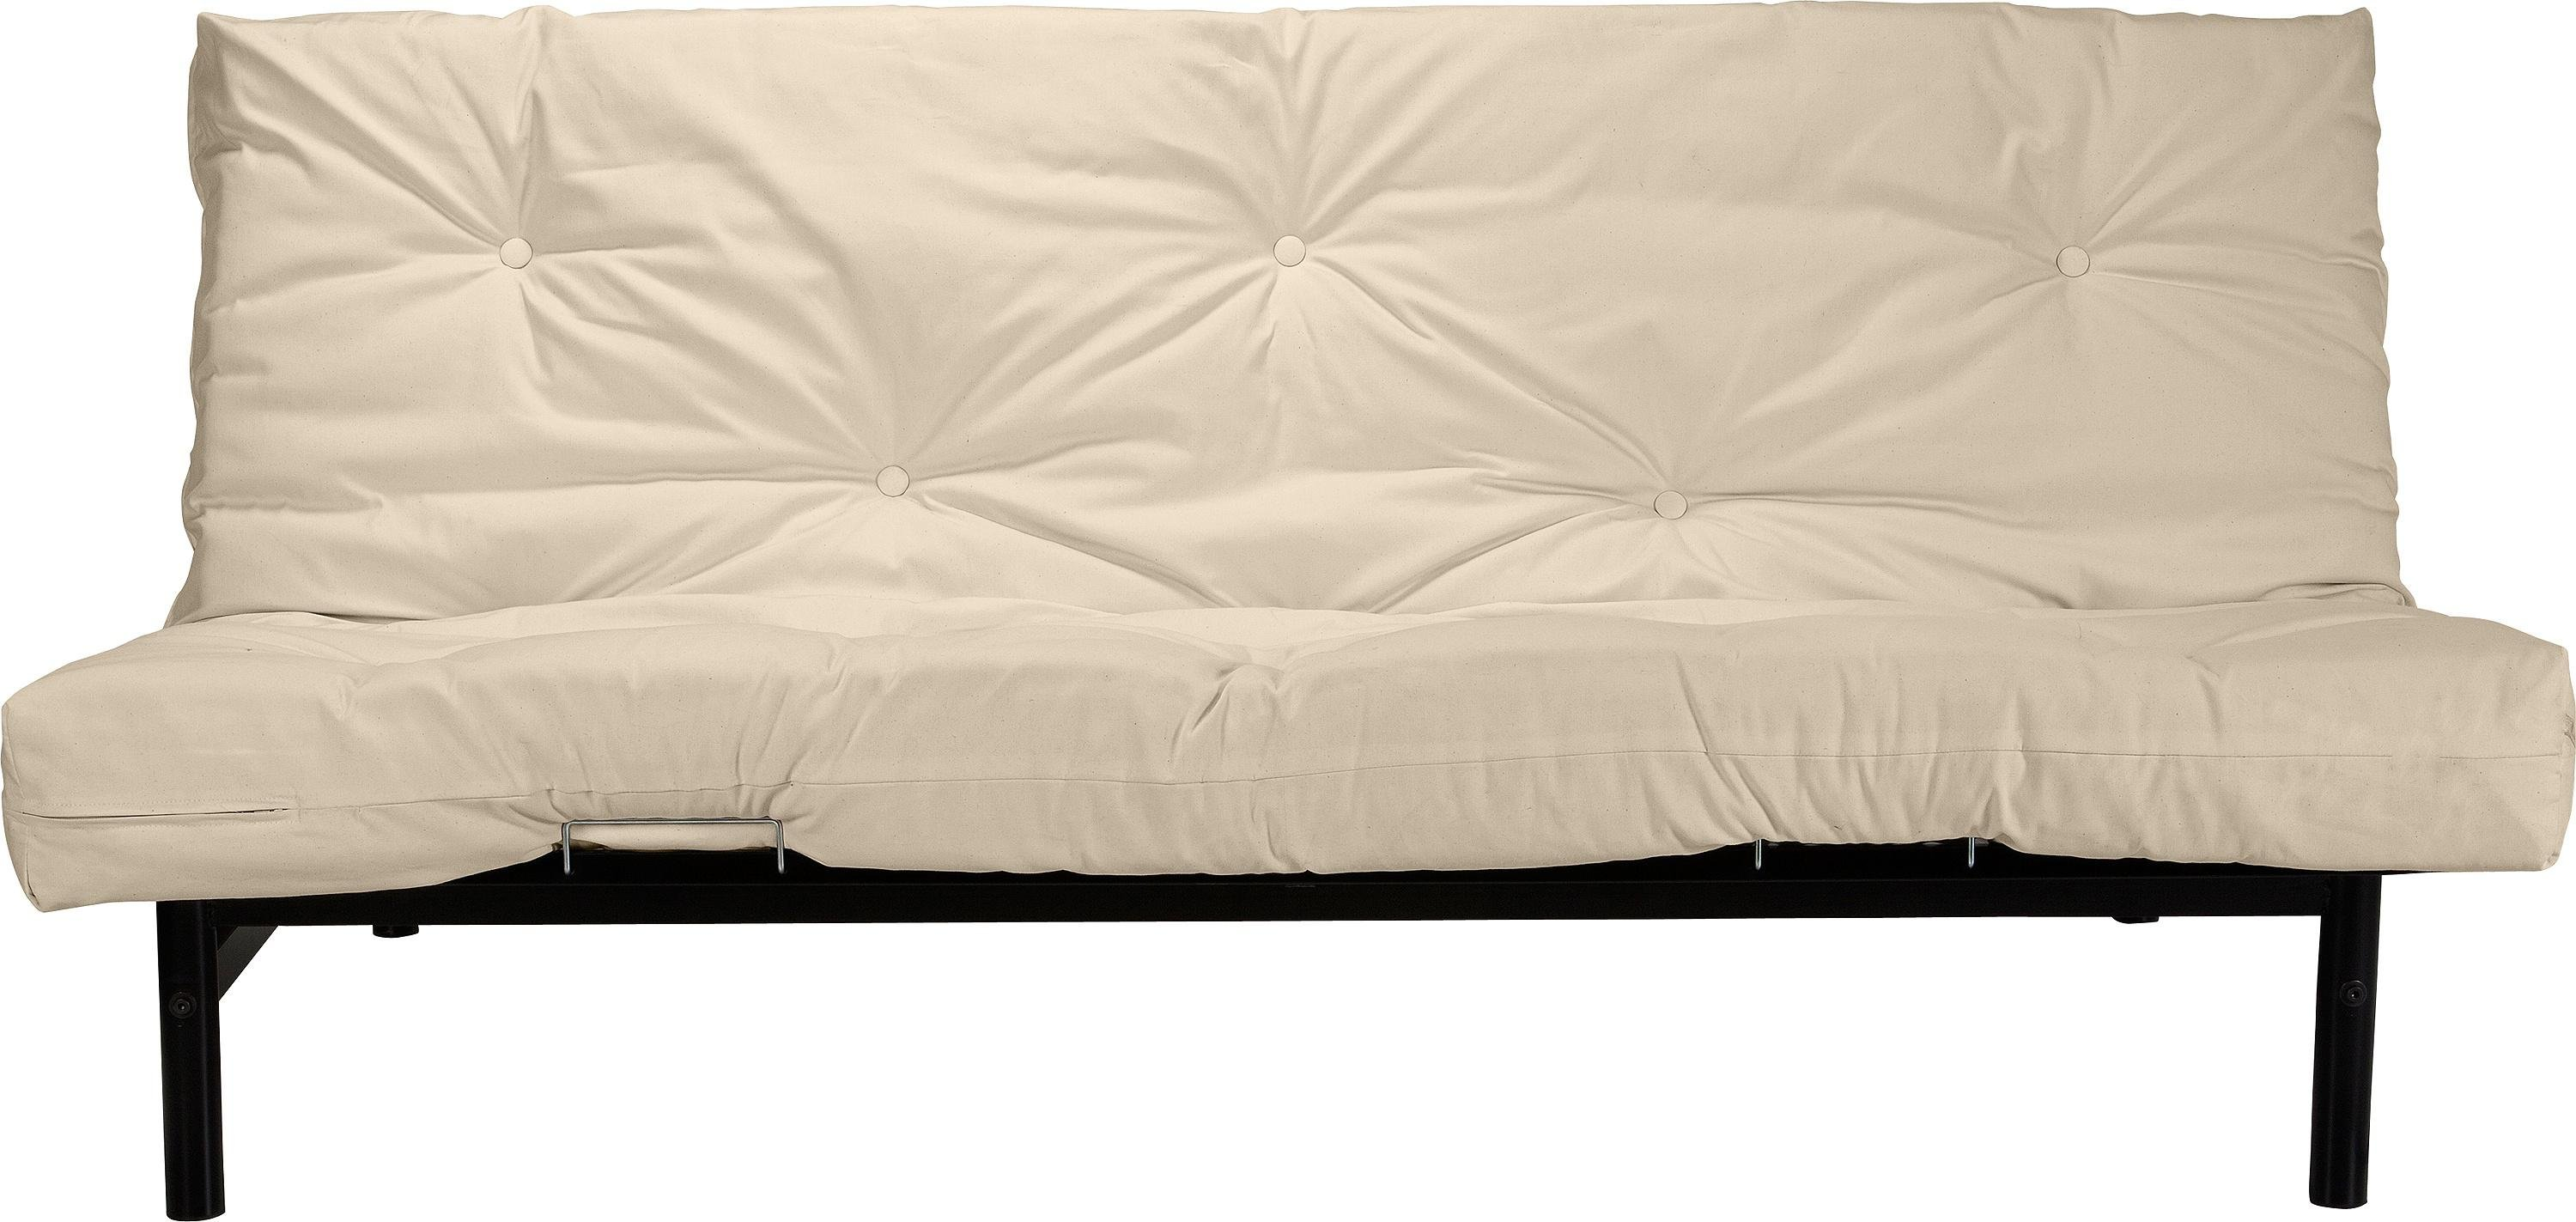 ideas stylish athens gainesville world country full farmers futons of excelent marvelous and size stores savannah georgia futon lolesinmo amiable throughout ga for furniture natural com arresting